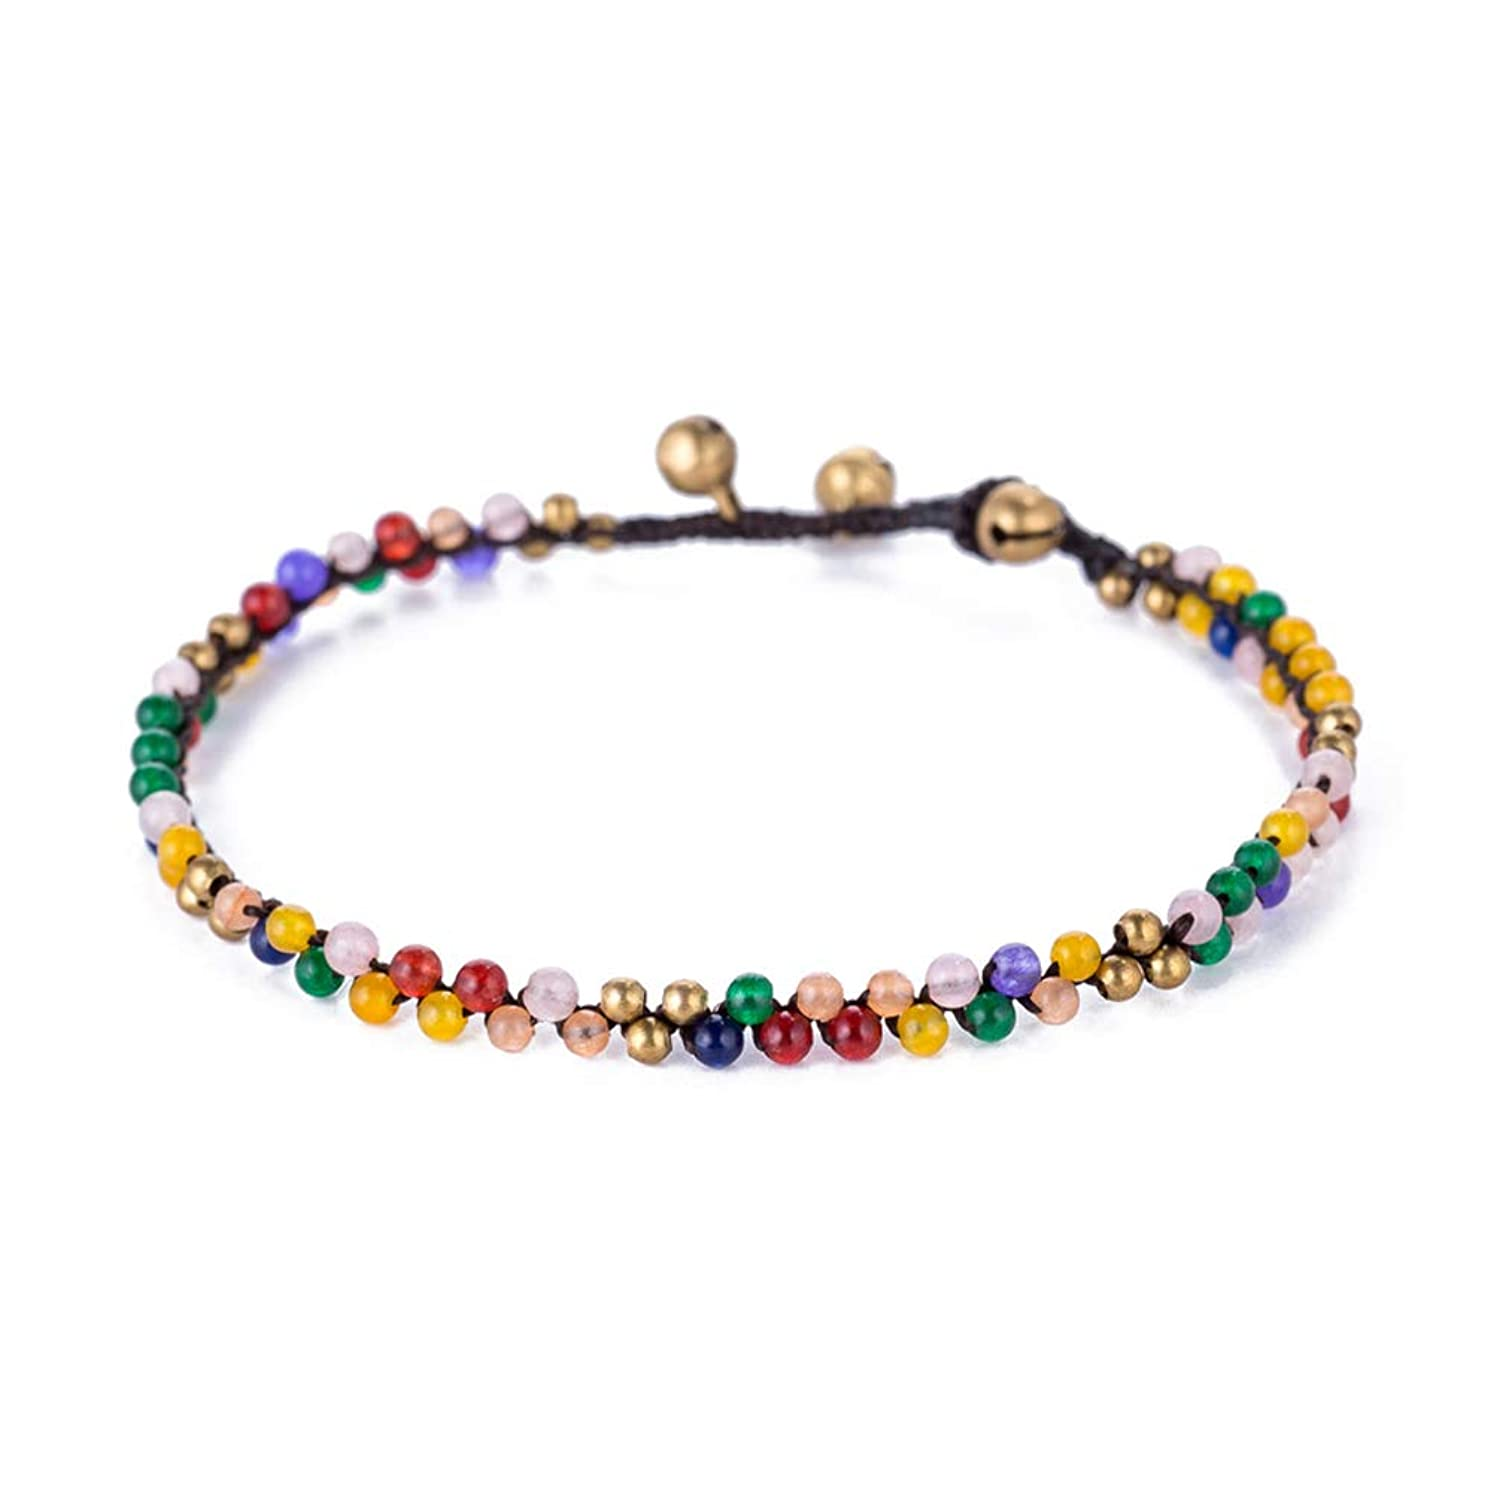 TOMLEE Vintage Handmade Wax Cord Stone Beaded Anklets for Women, Gypsy Style Boho Anklet for Teen Girls, Bohemian Ankle Bracelets for Women